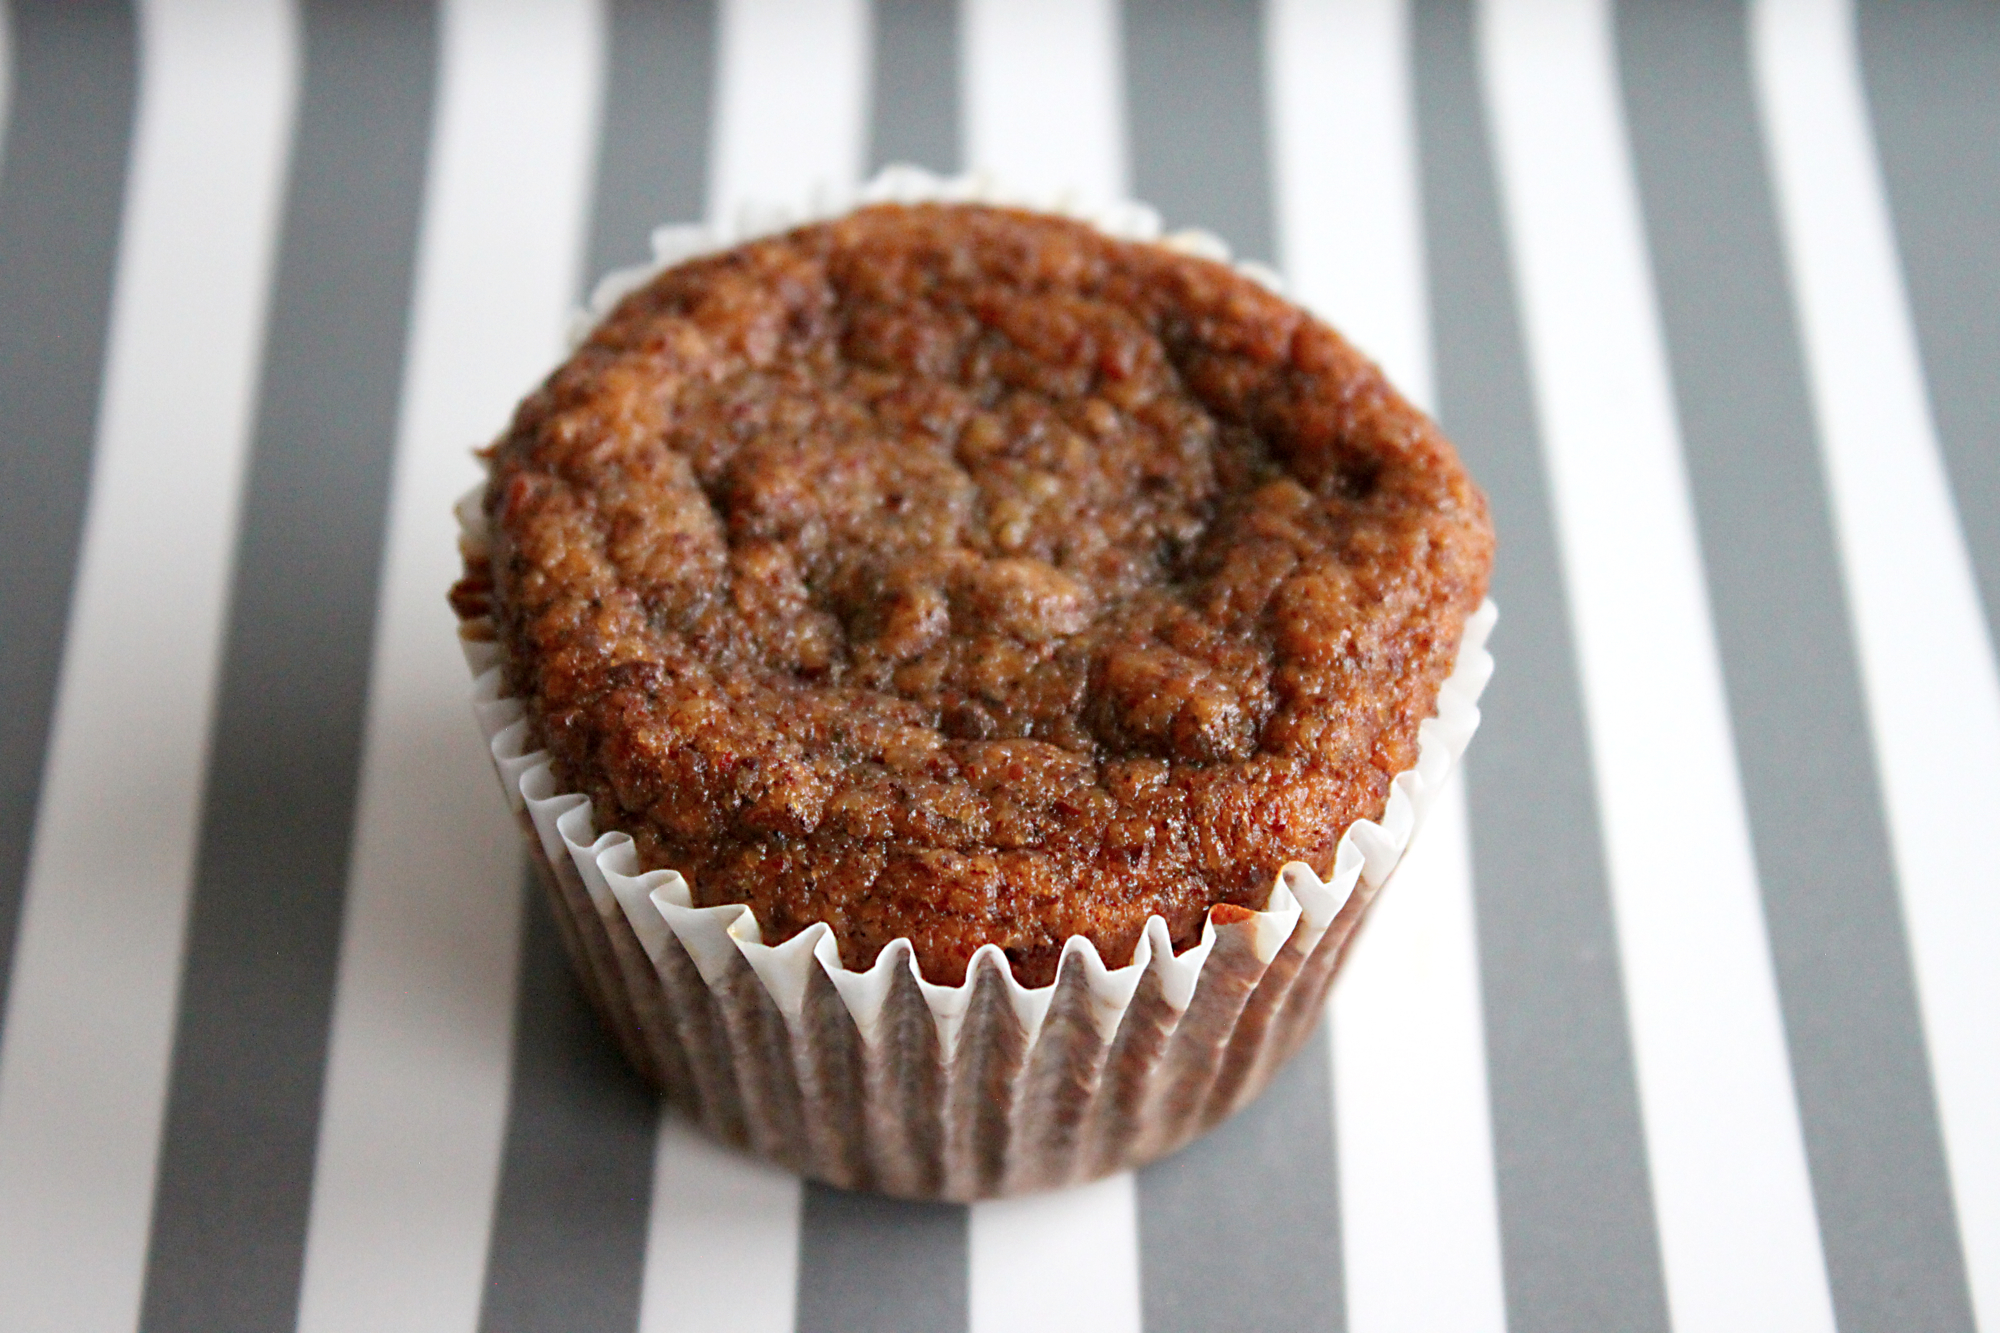 From the Kitchen: Banana Muffins | Blog